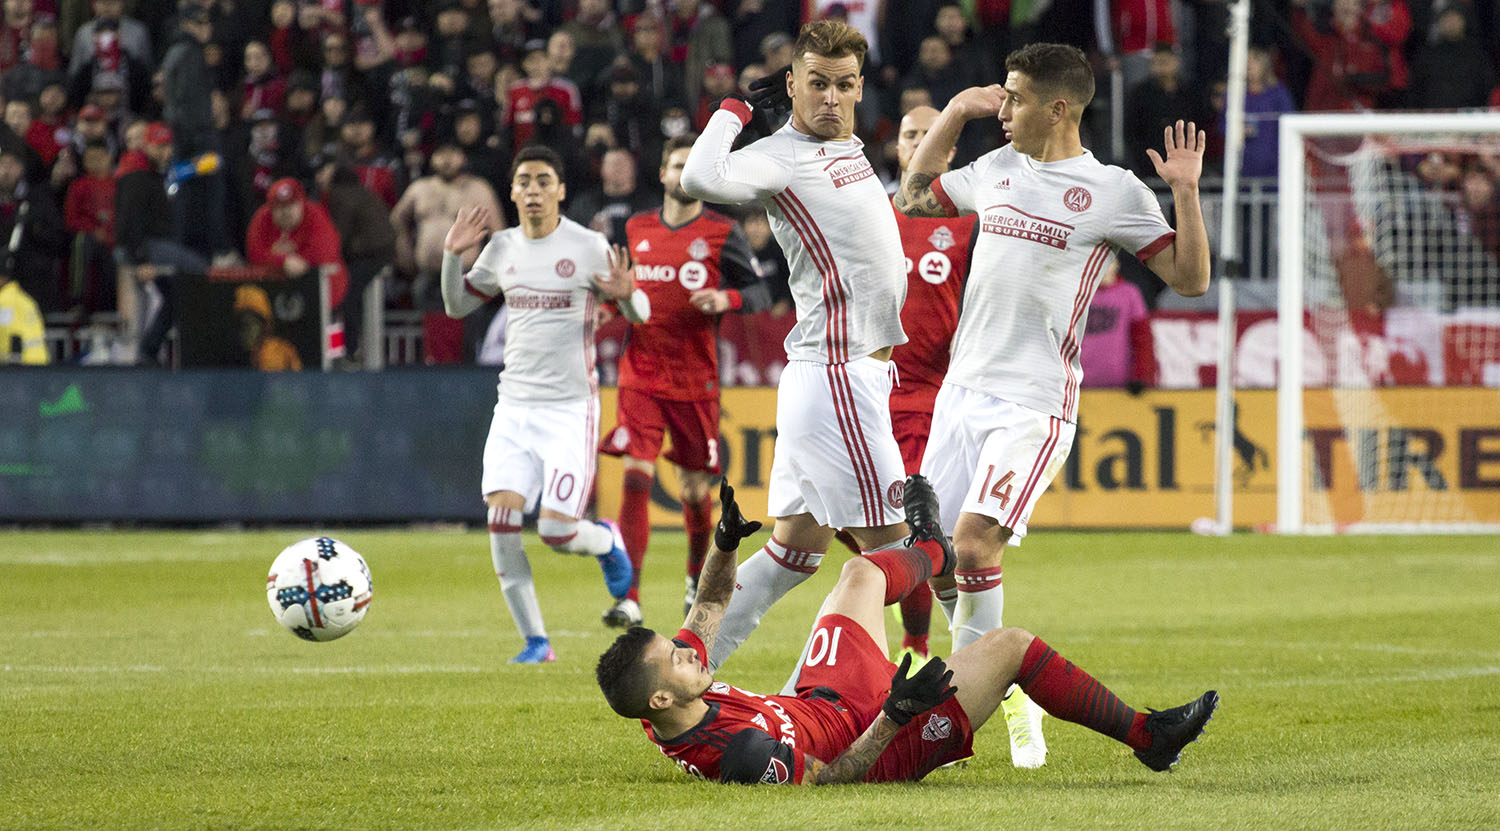 Sebastian Giovinco laying on the ground as two Atlanta United FC players act as if nothing had happened. Image by Dennis Marciniak.